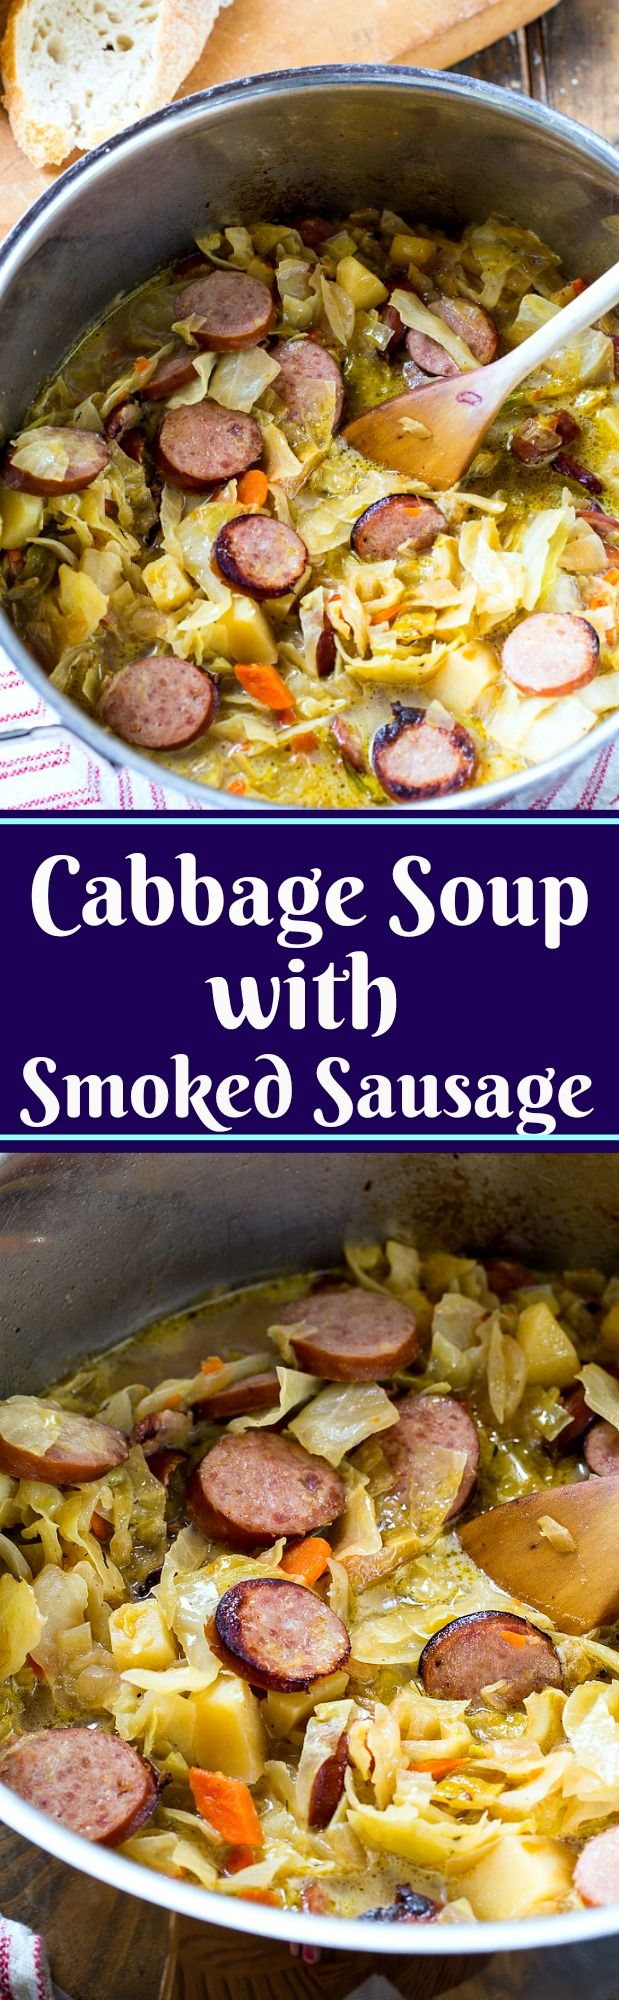 Cabbage Soup with Smoked Sausage #soup #sausage #cabbage